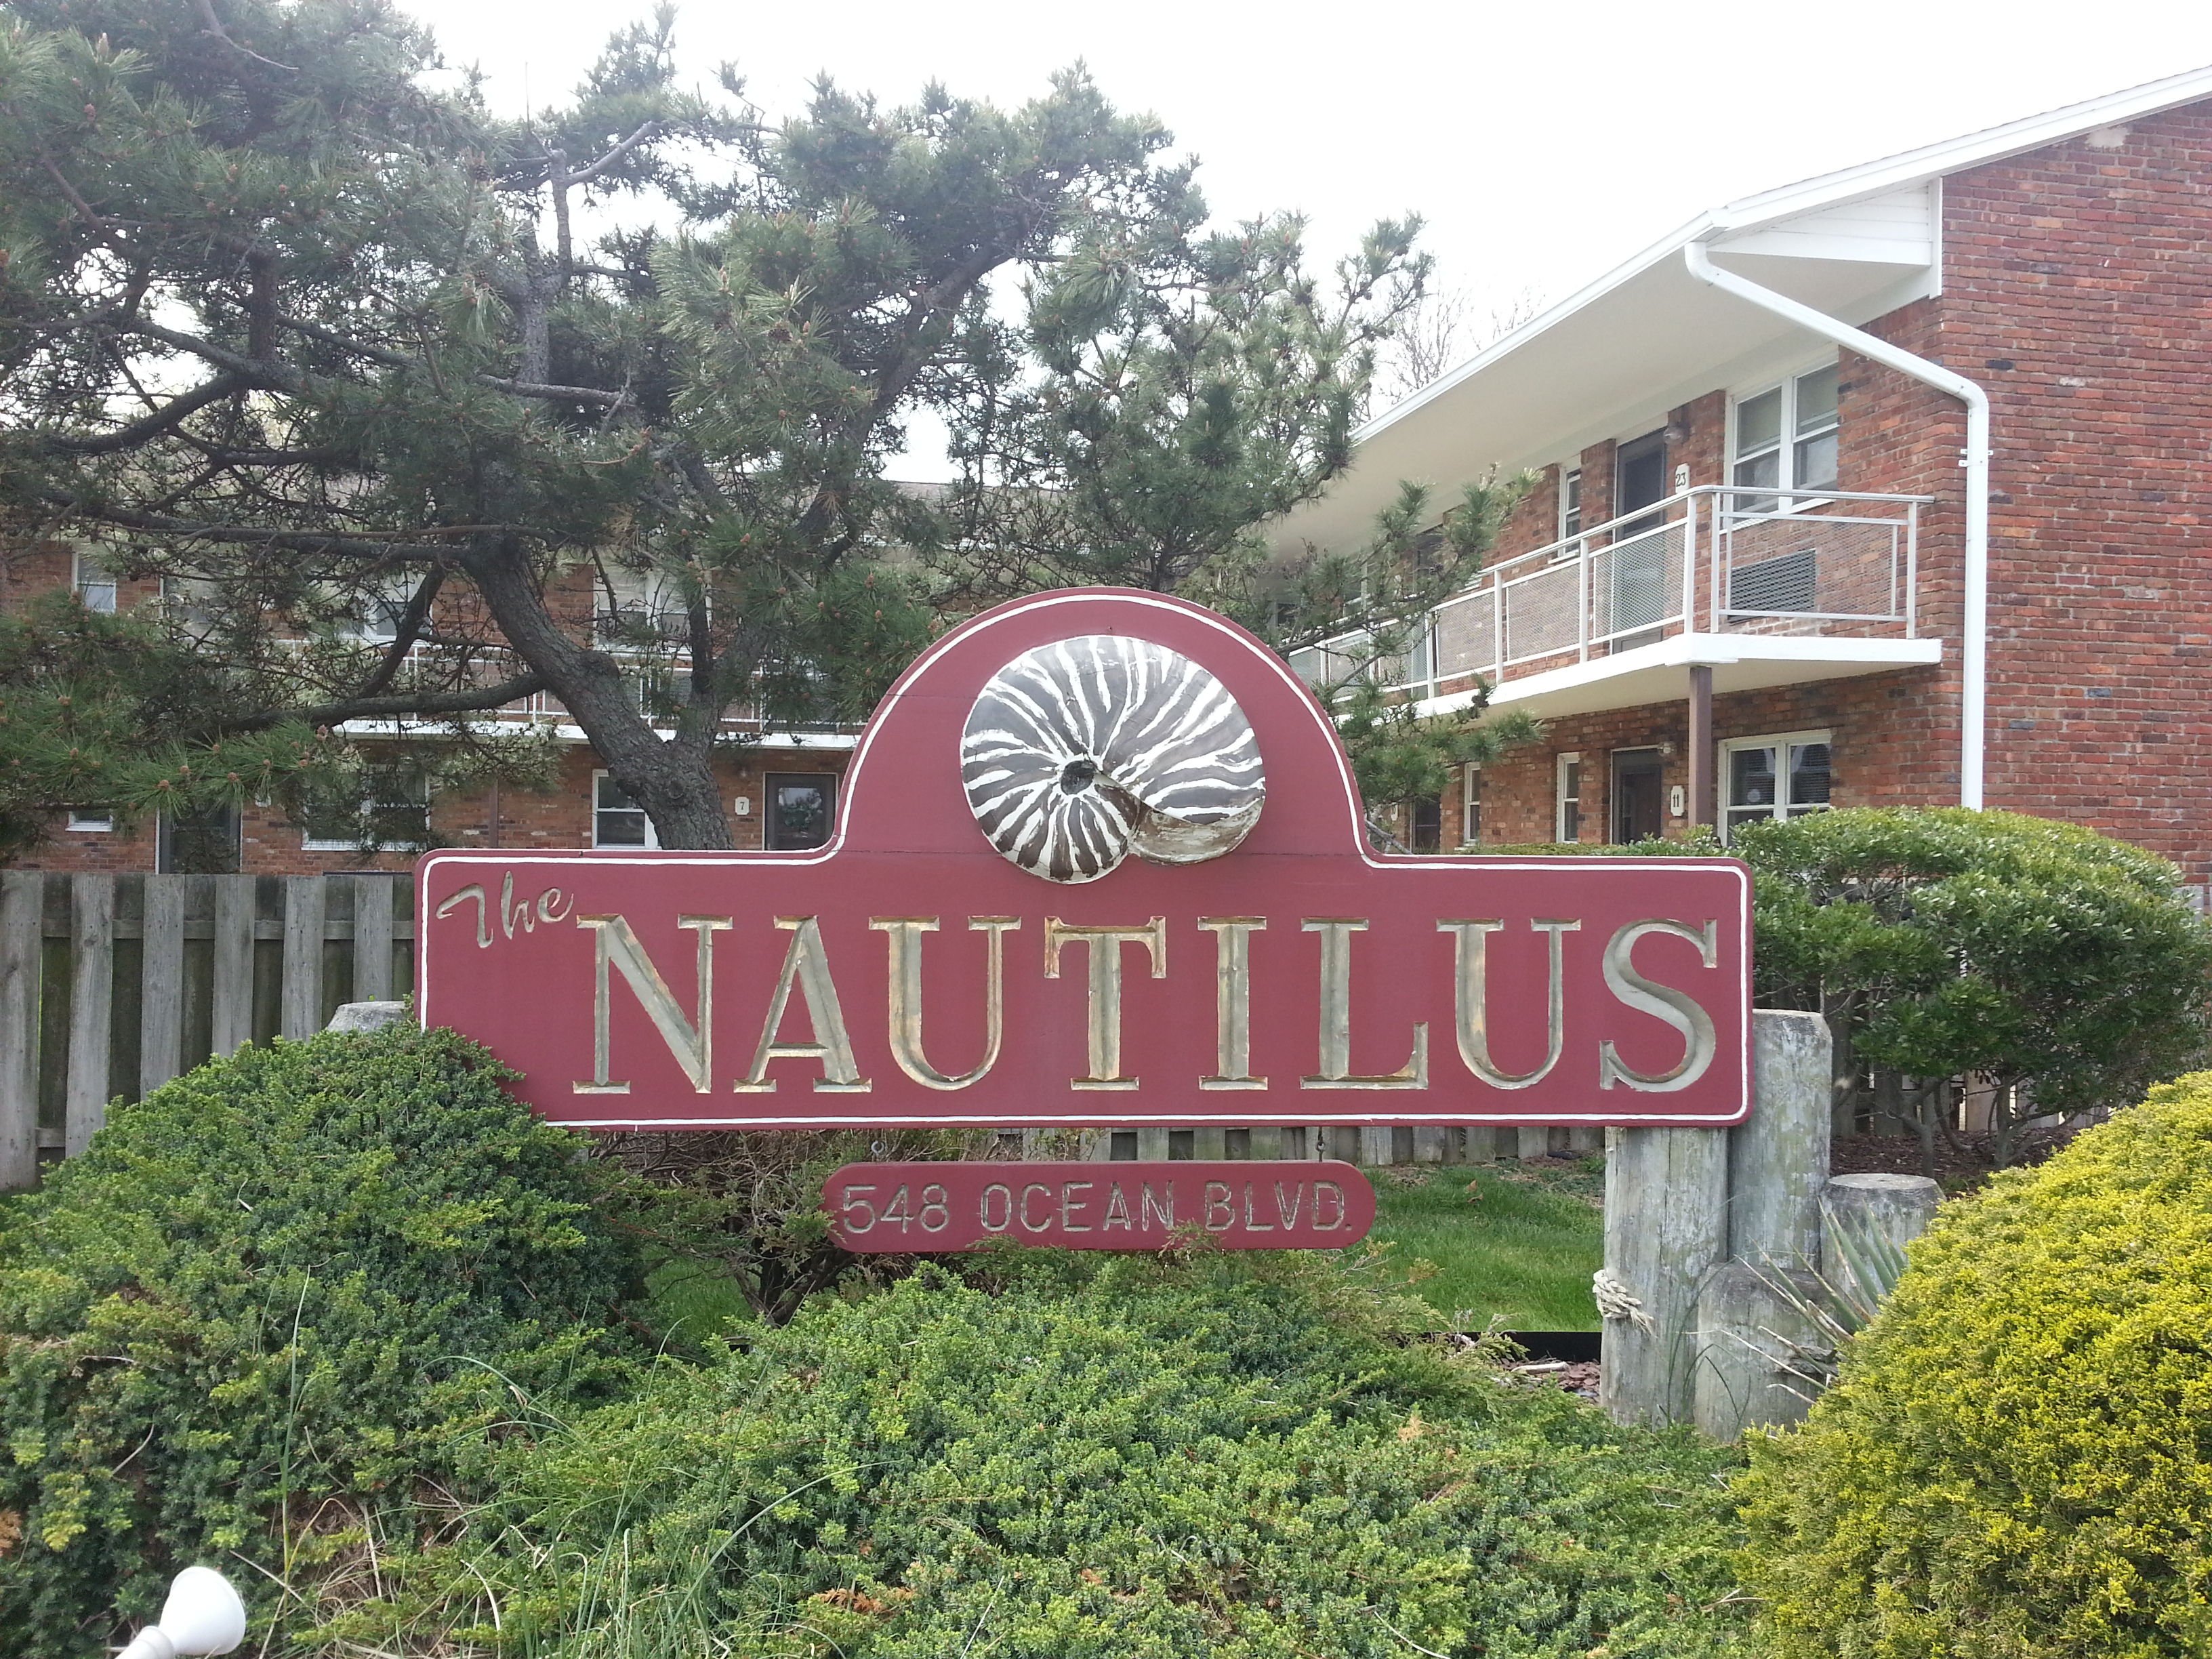 The Nautilus condos are located at 548 Ocean Blvd, one block from the each in West End Long Branch